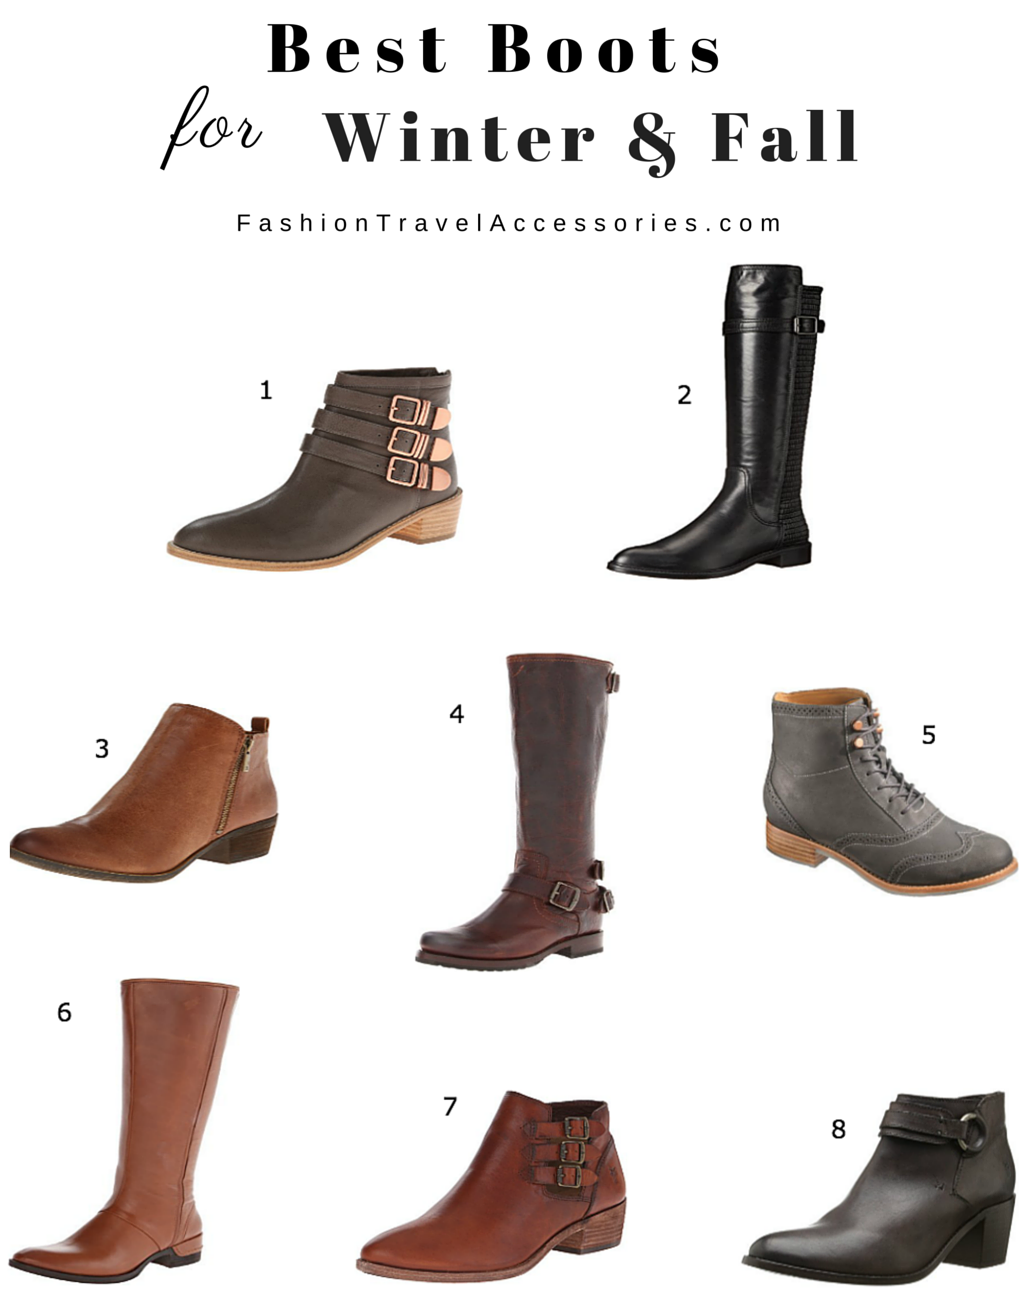 Best Boots For Winter & Fall For Everyday Wear: Comfortable & Stylish